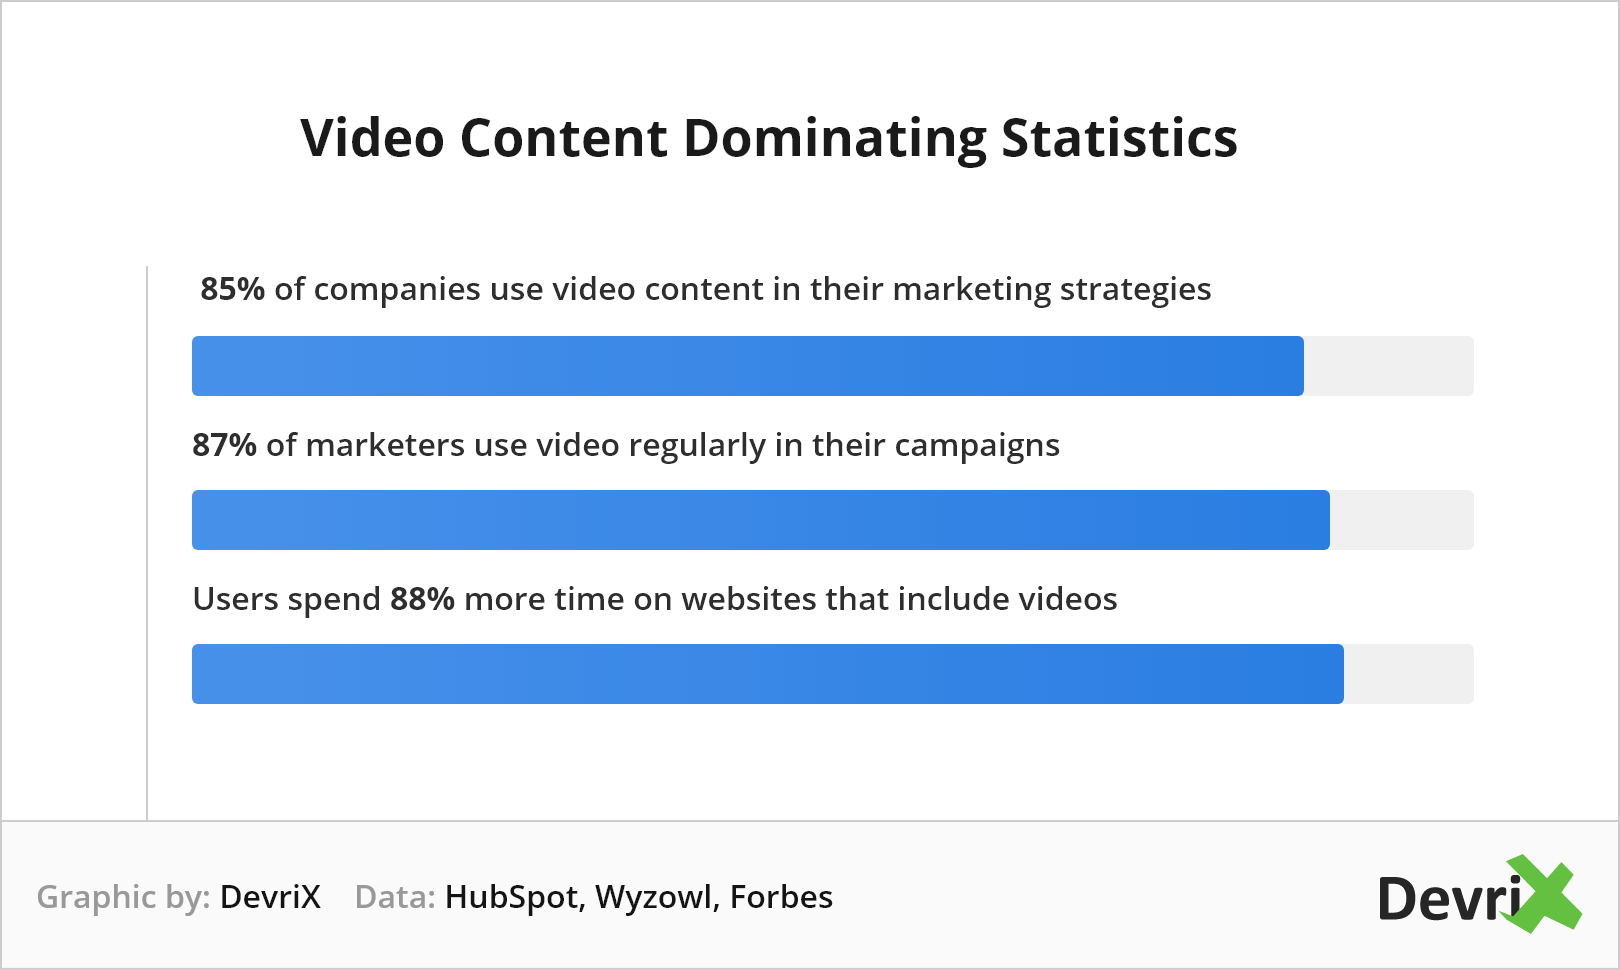 Video Content Dominating Statistics